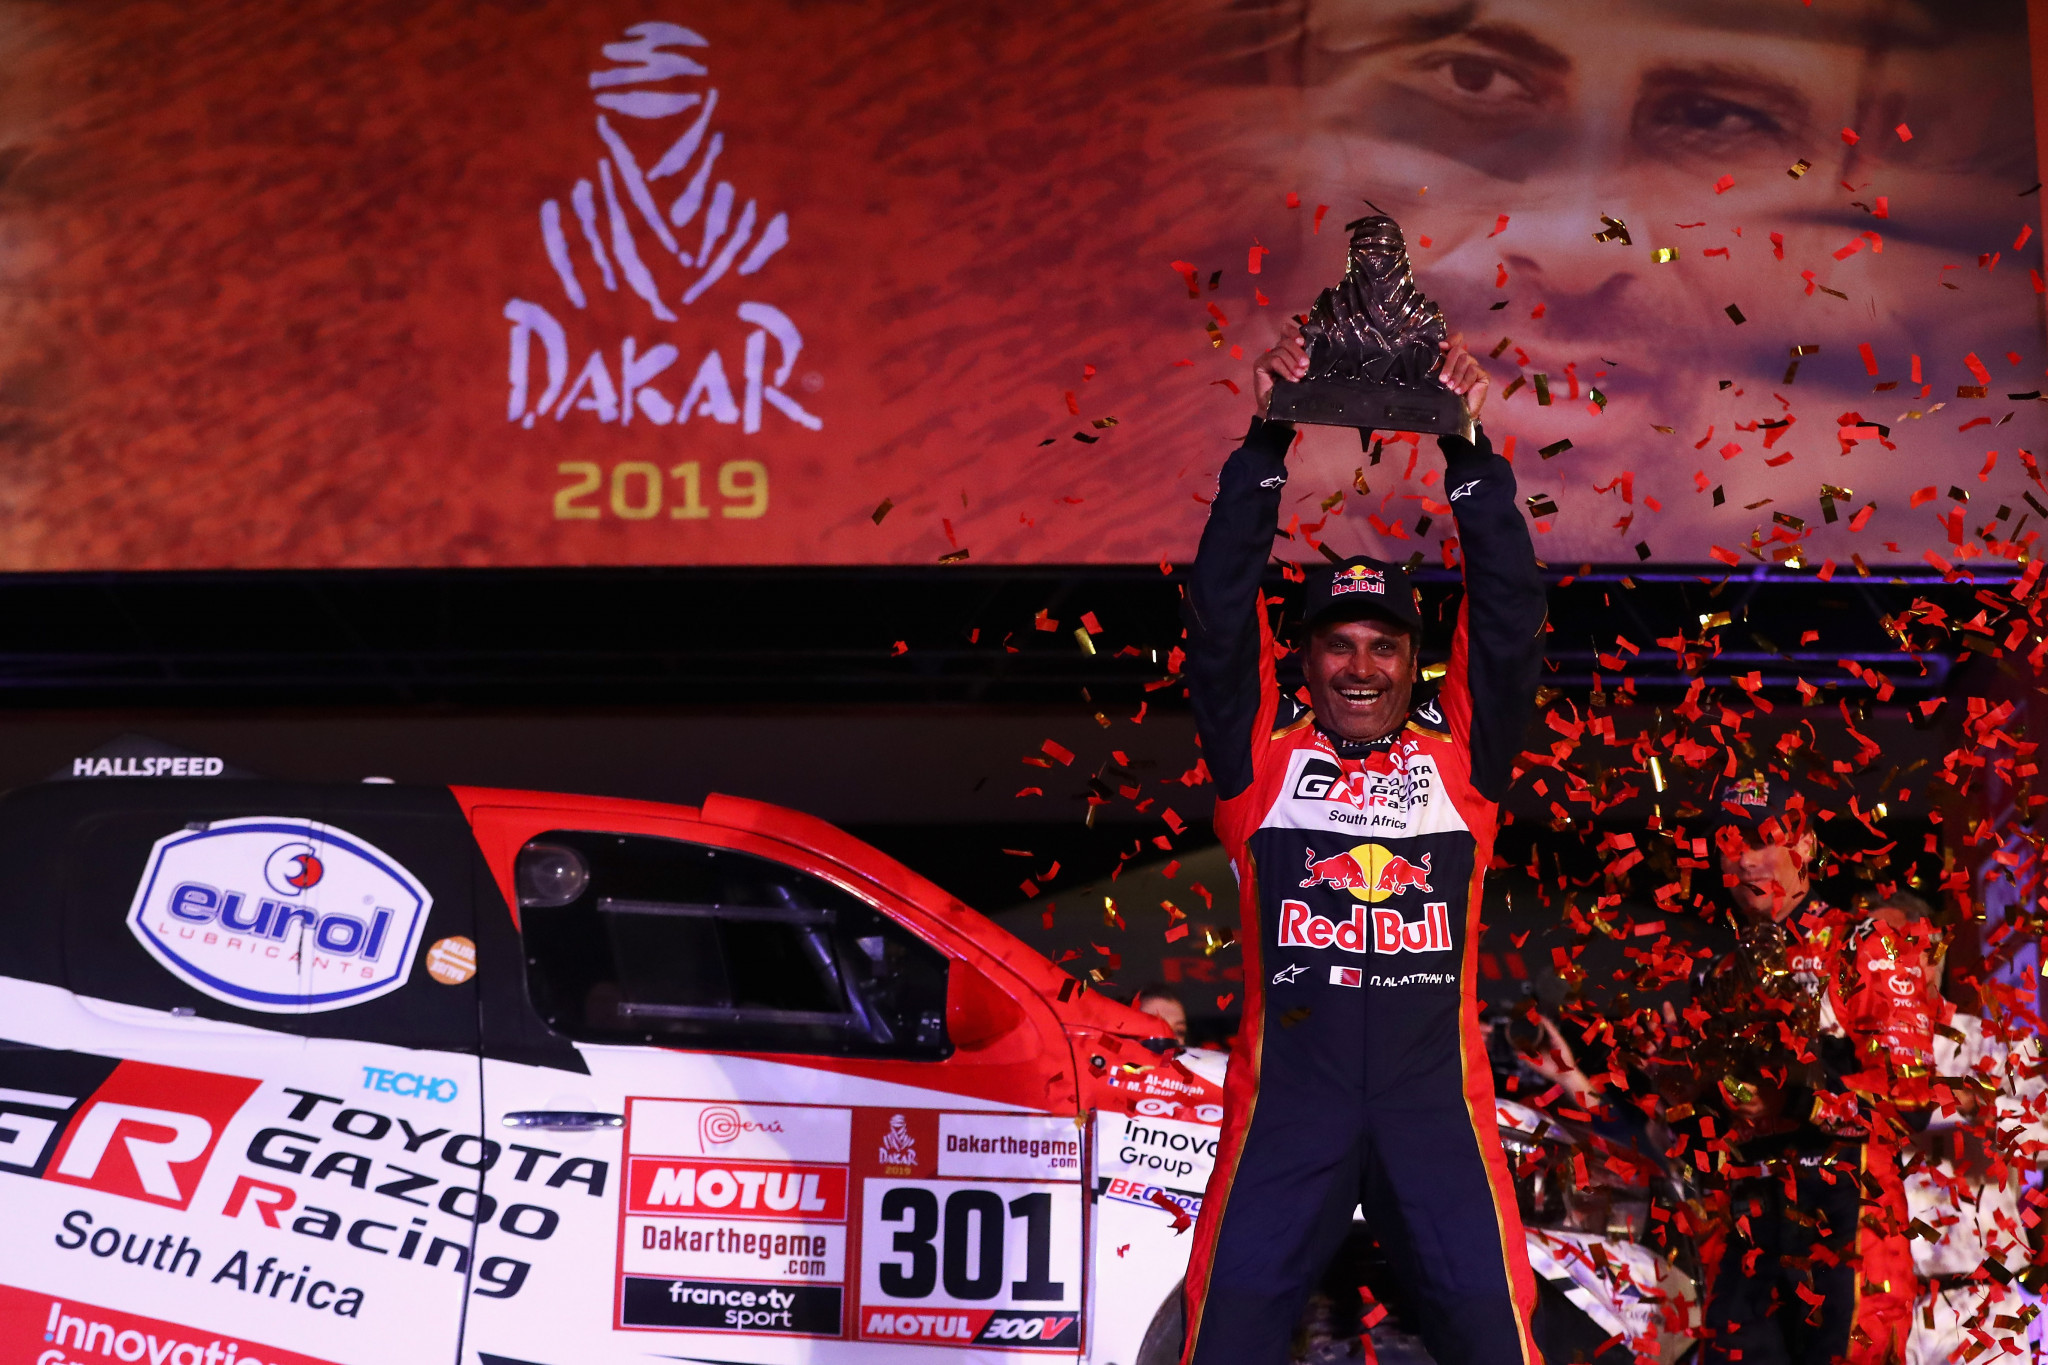 Nasser Al-Attiyah won the Dakar Rally for the third time in January ©Getty Images